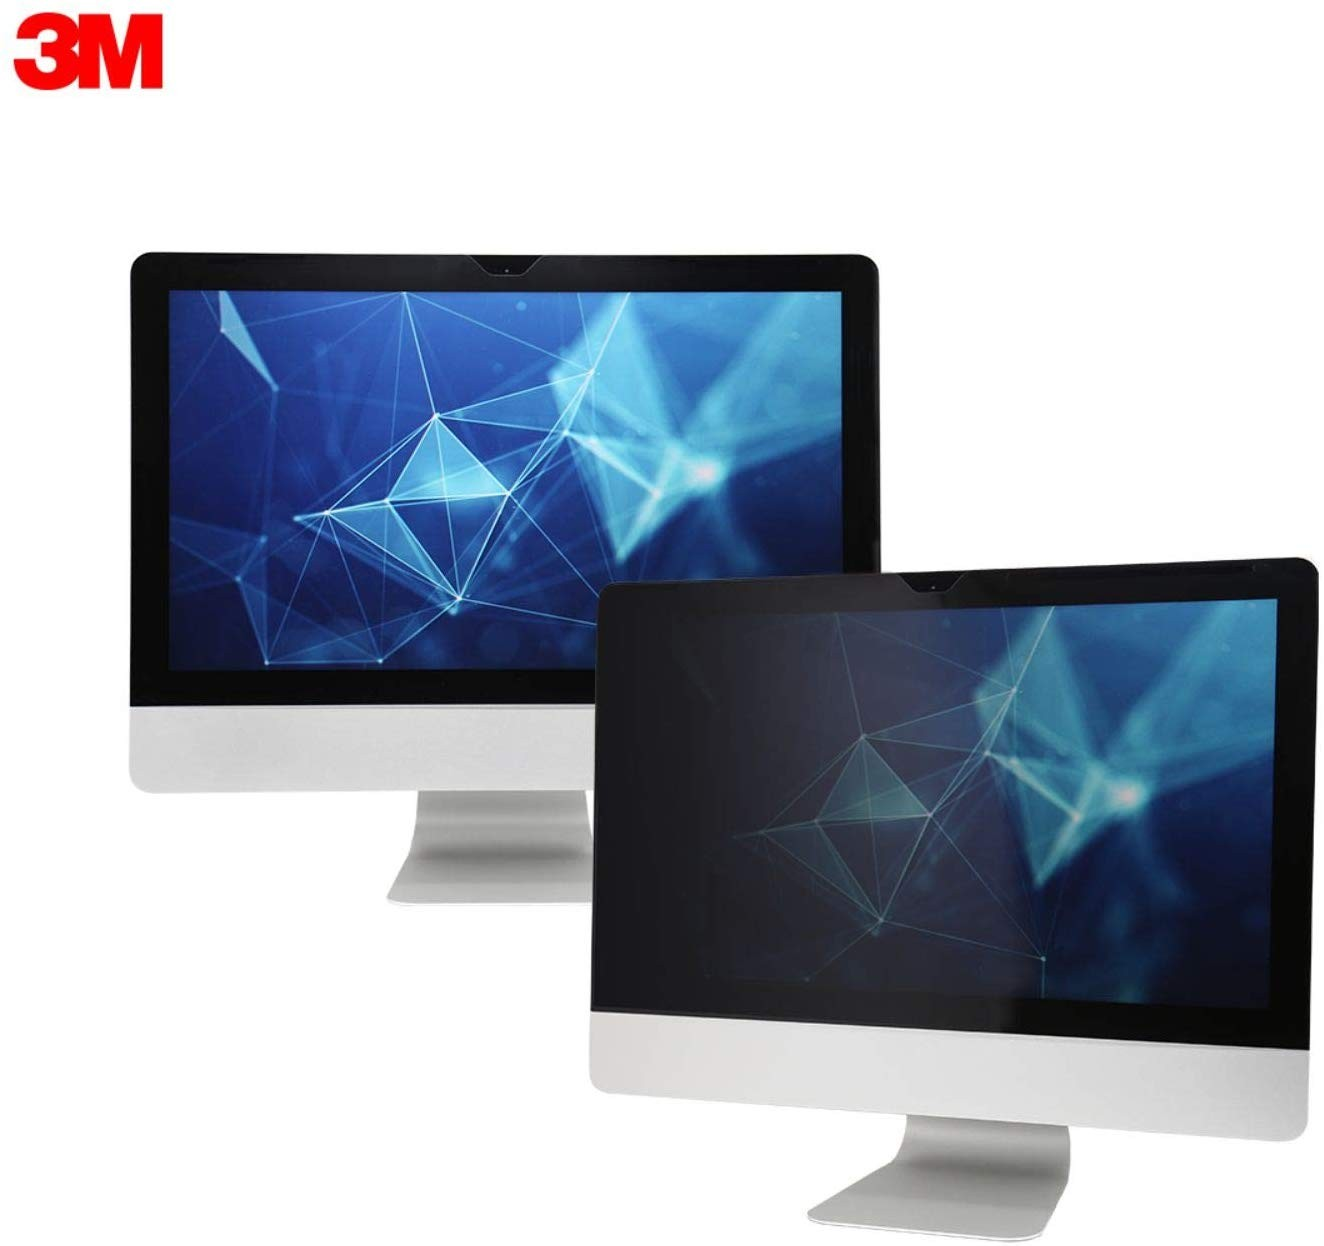 3M Privacy Filter For 27 Apple iMAC Monitor PFMAP002